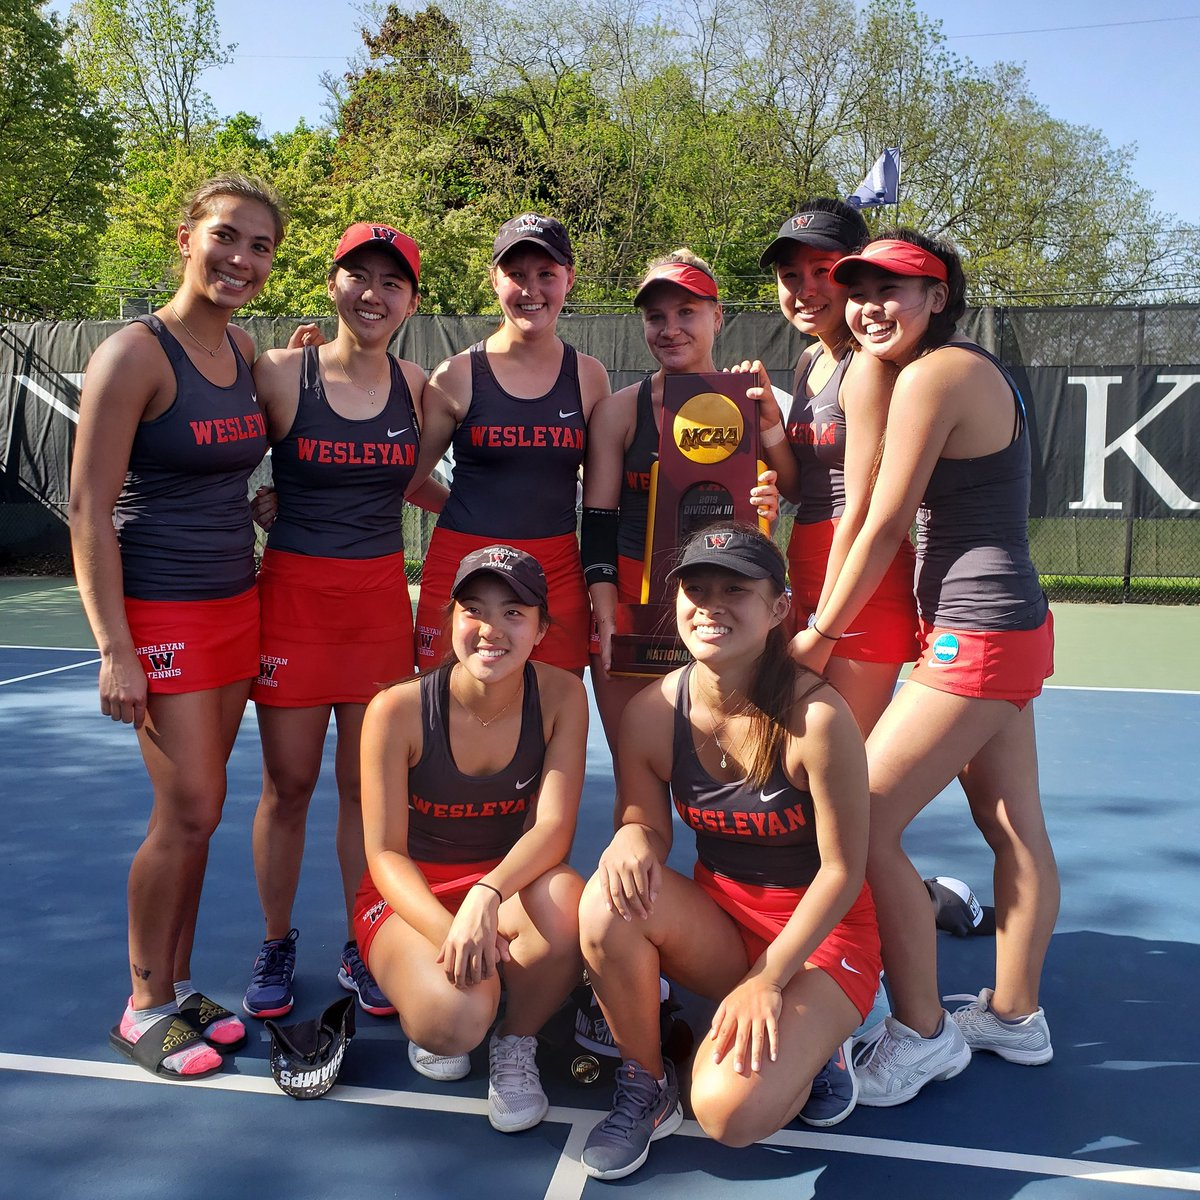 test Twitter Media - RT @wes_athletics: Women's @cardstennis are your 2019 NATIONAL CHAMPIONS!!!!! #GoWes https://t.co/MNv8bXp95B